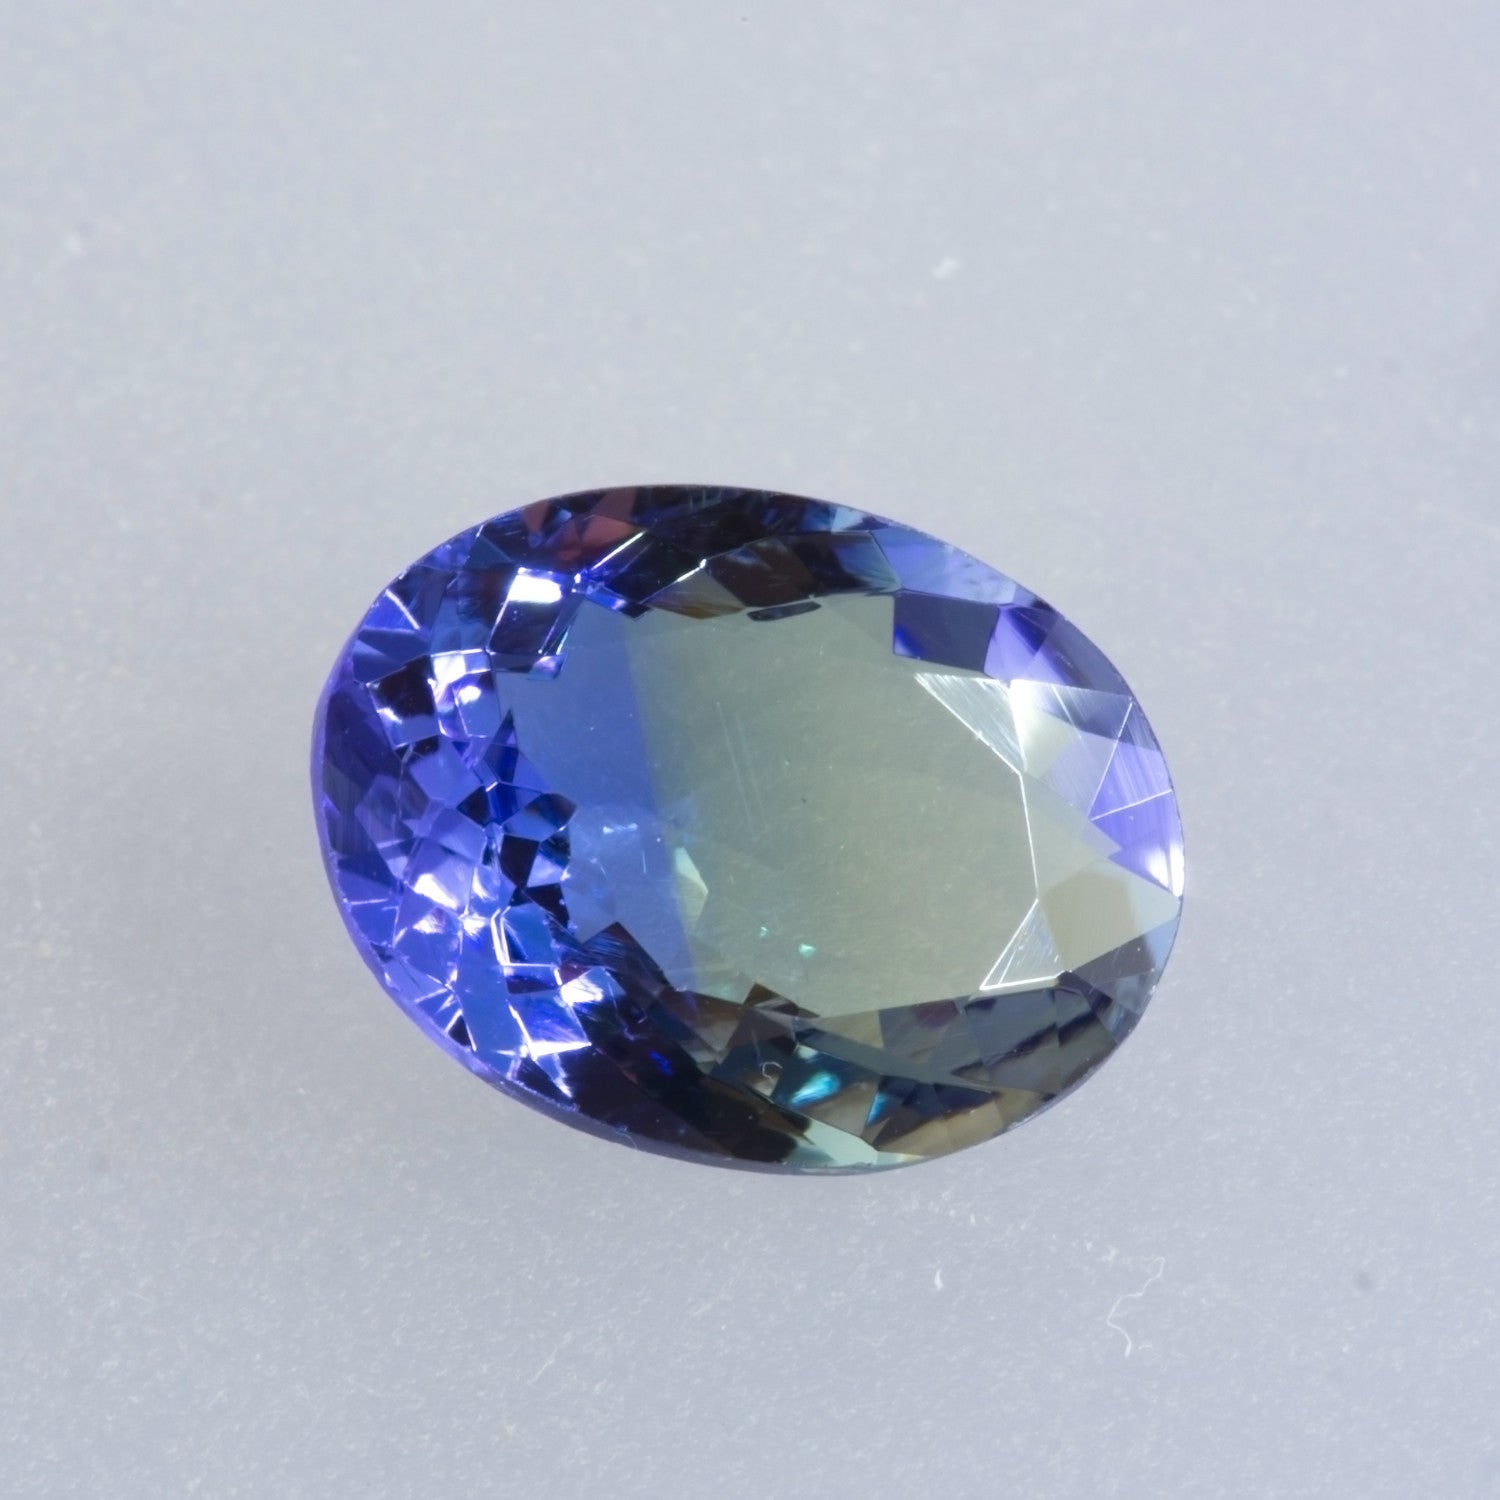 Unheated 2.81ct Oval Cut Bi-Colour Tanzanite